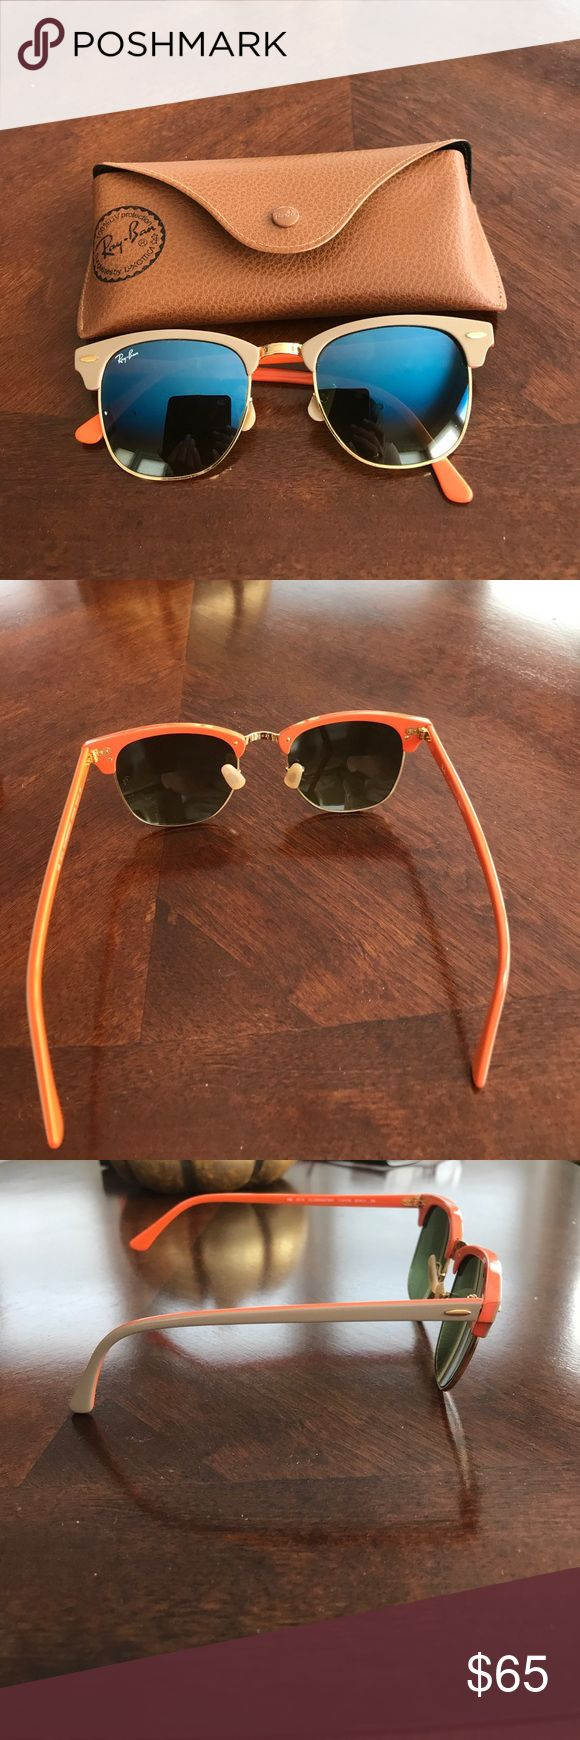 Ray.Ban clubmaster sunglasses In amazing condition with no scratches Ray-Ban Accessories Sunglasses